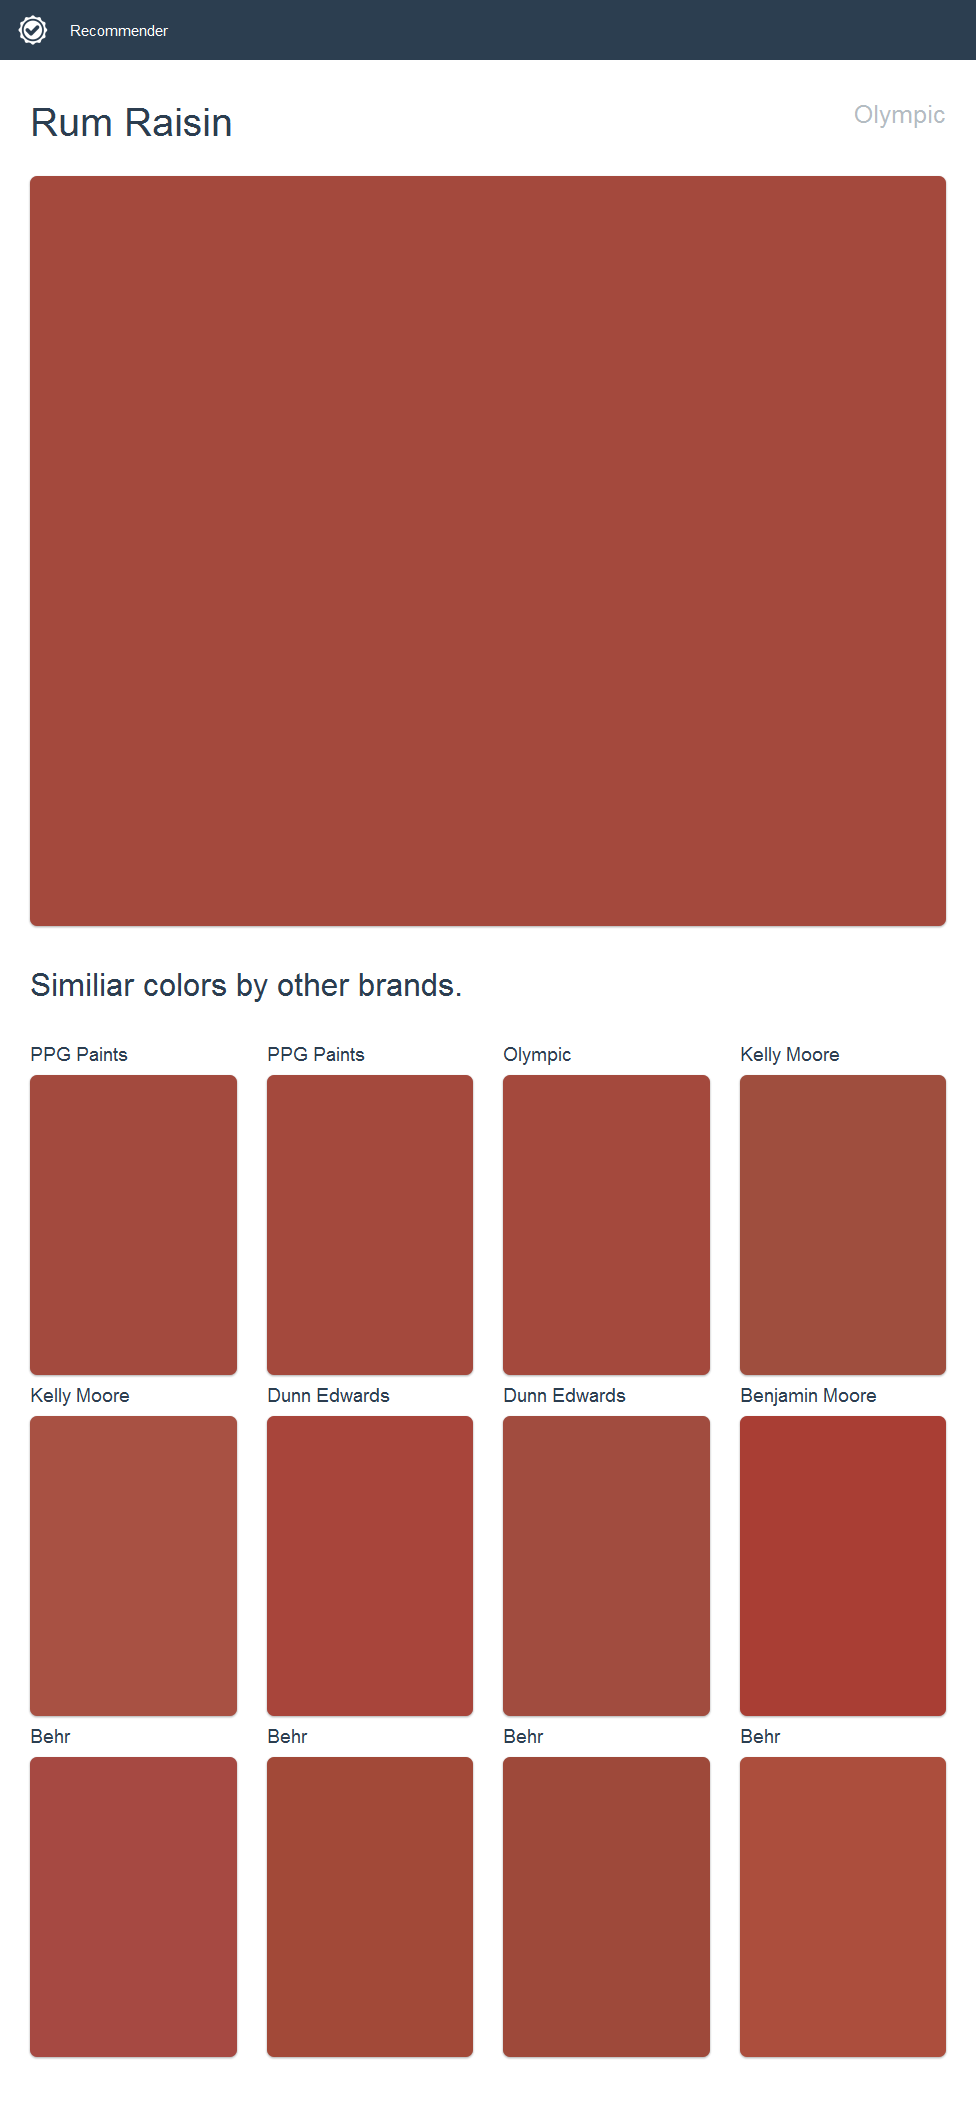 Rum Raisin, Olympic. Click the image to see similiar colors by other brands.